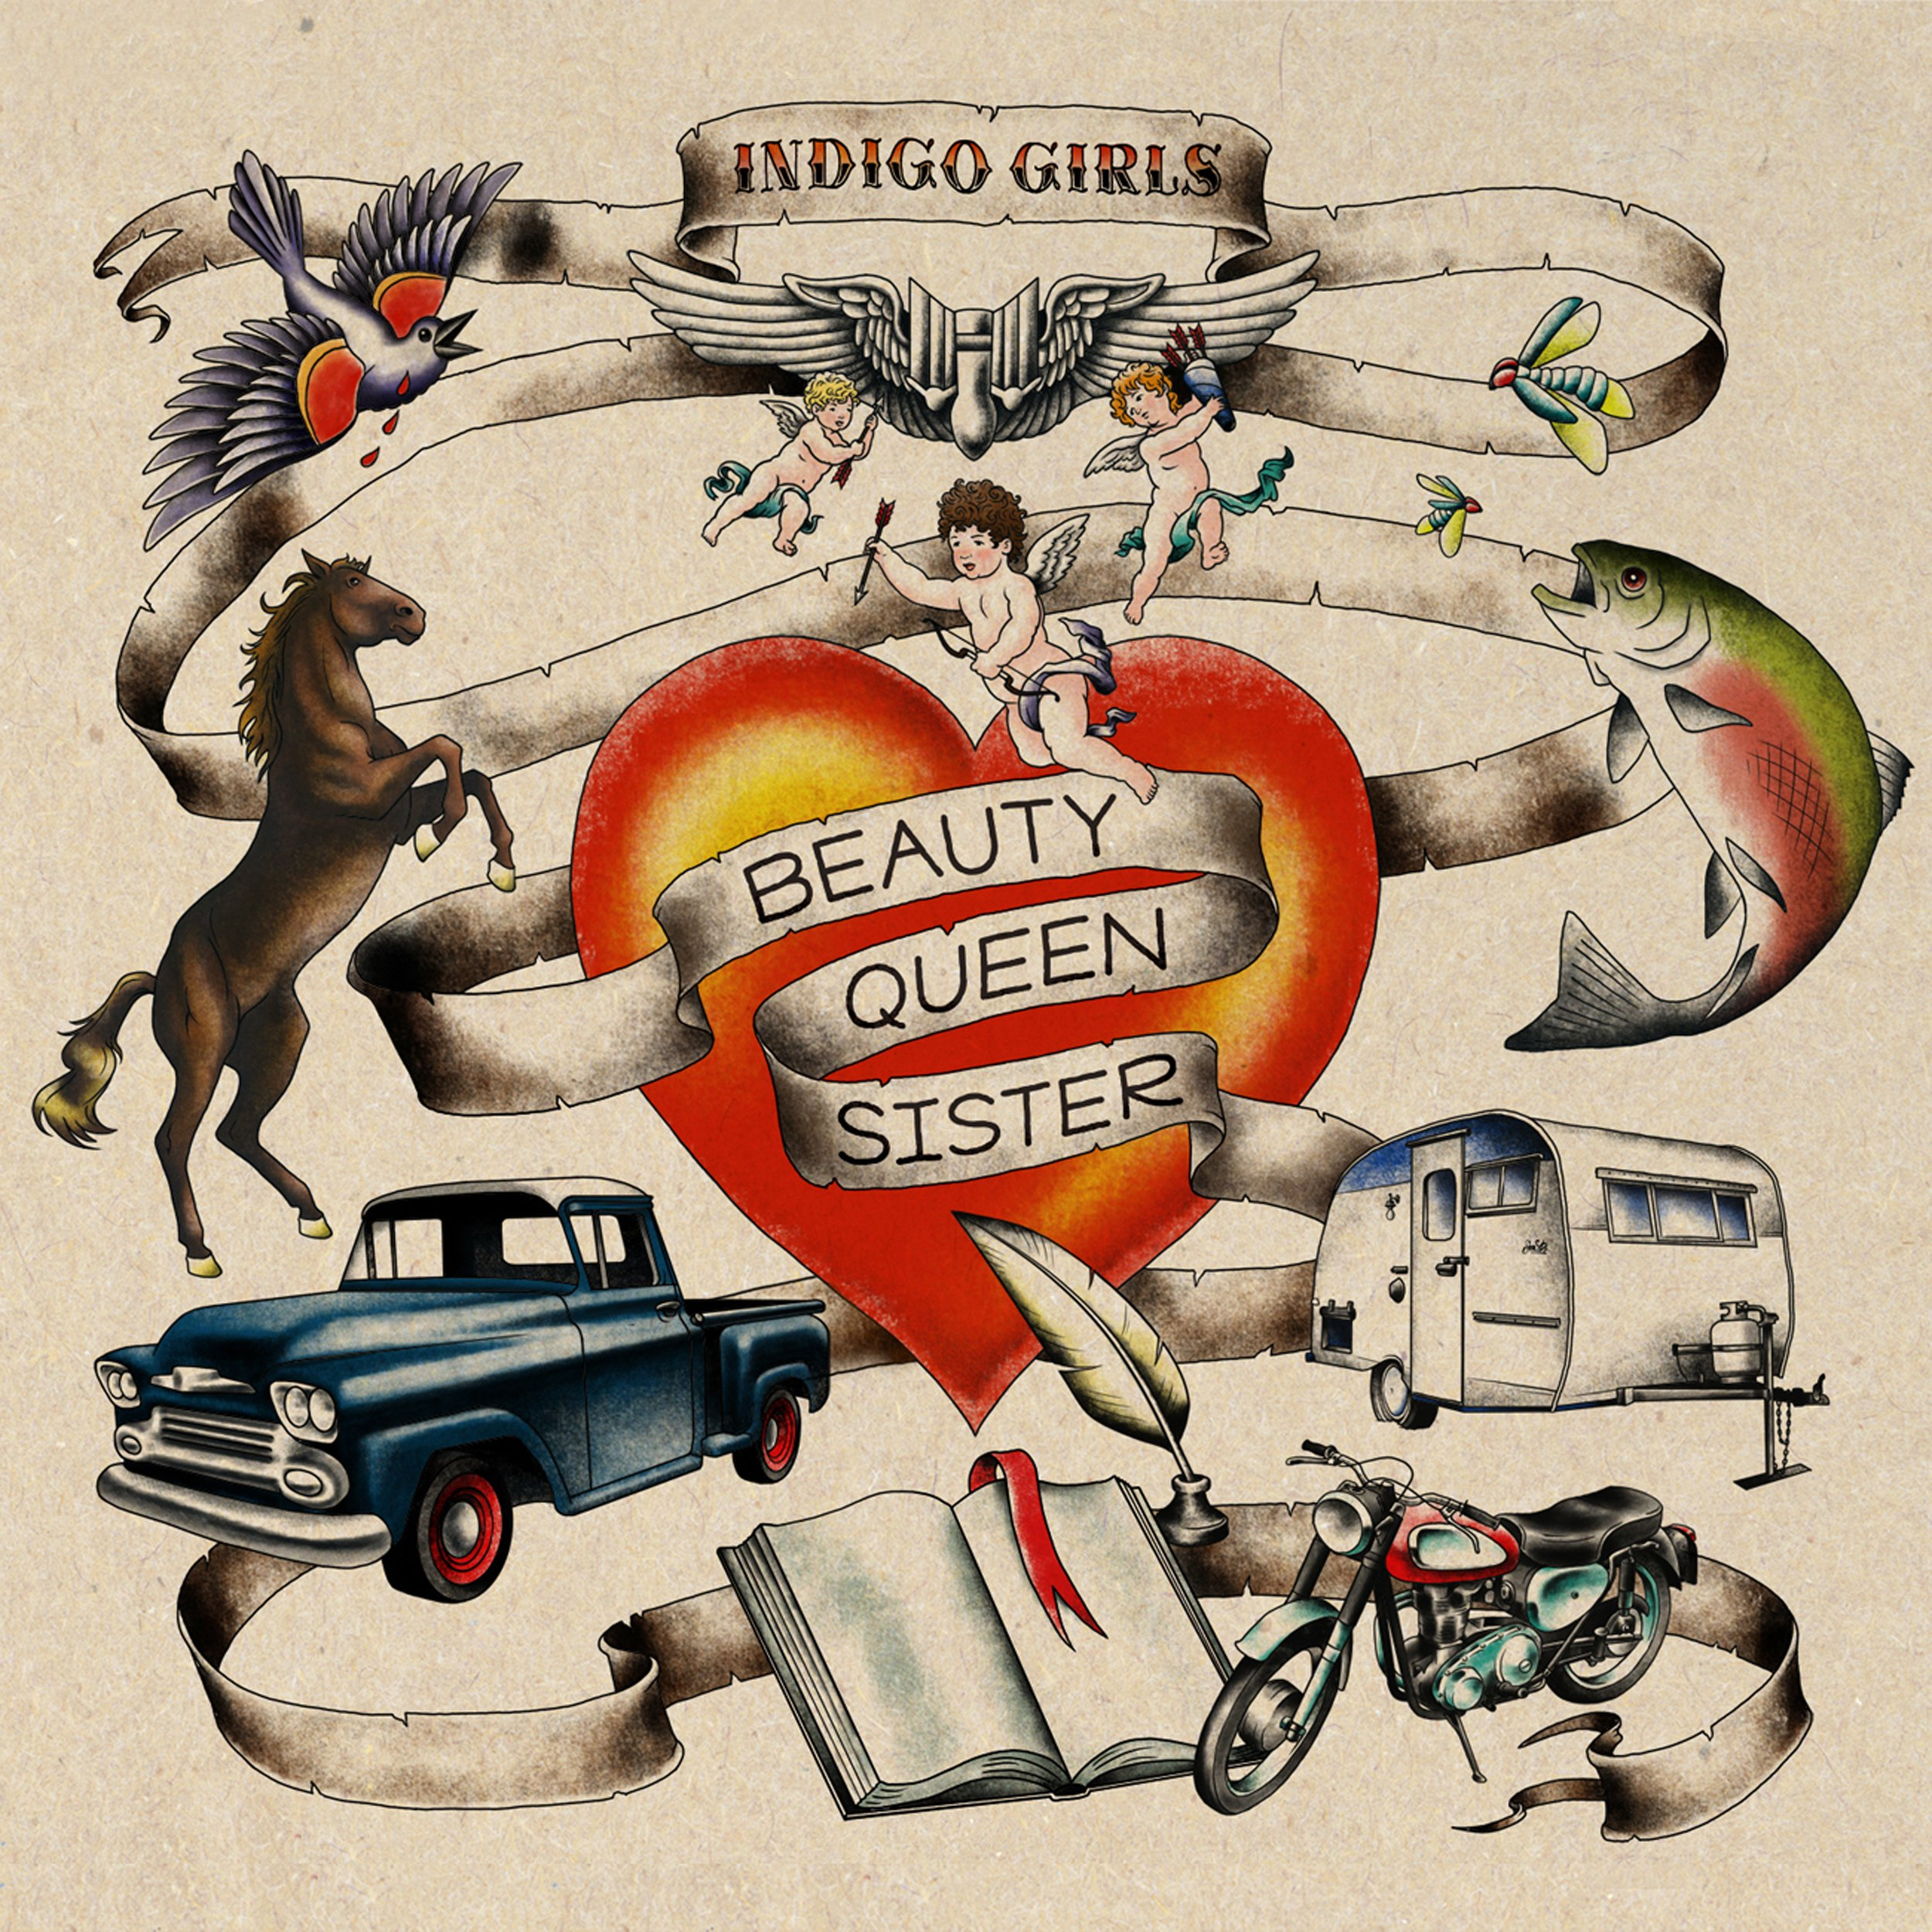 Beauty Queen Sister by IG Recordings / Vanguard Records